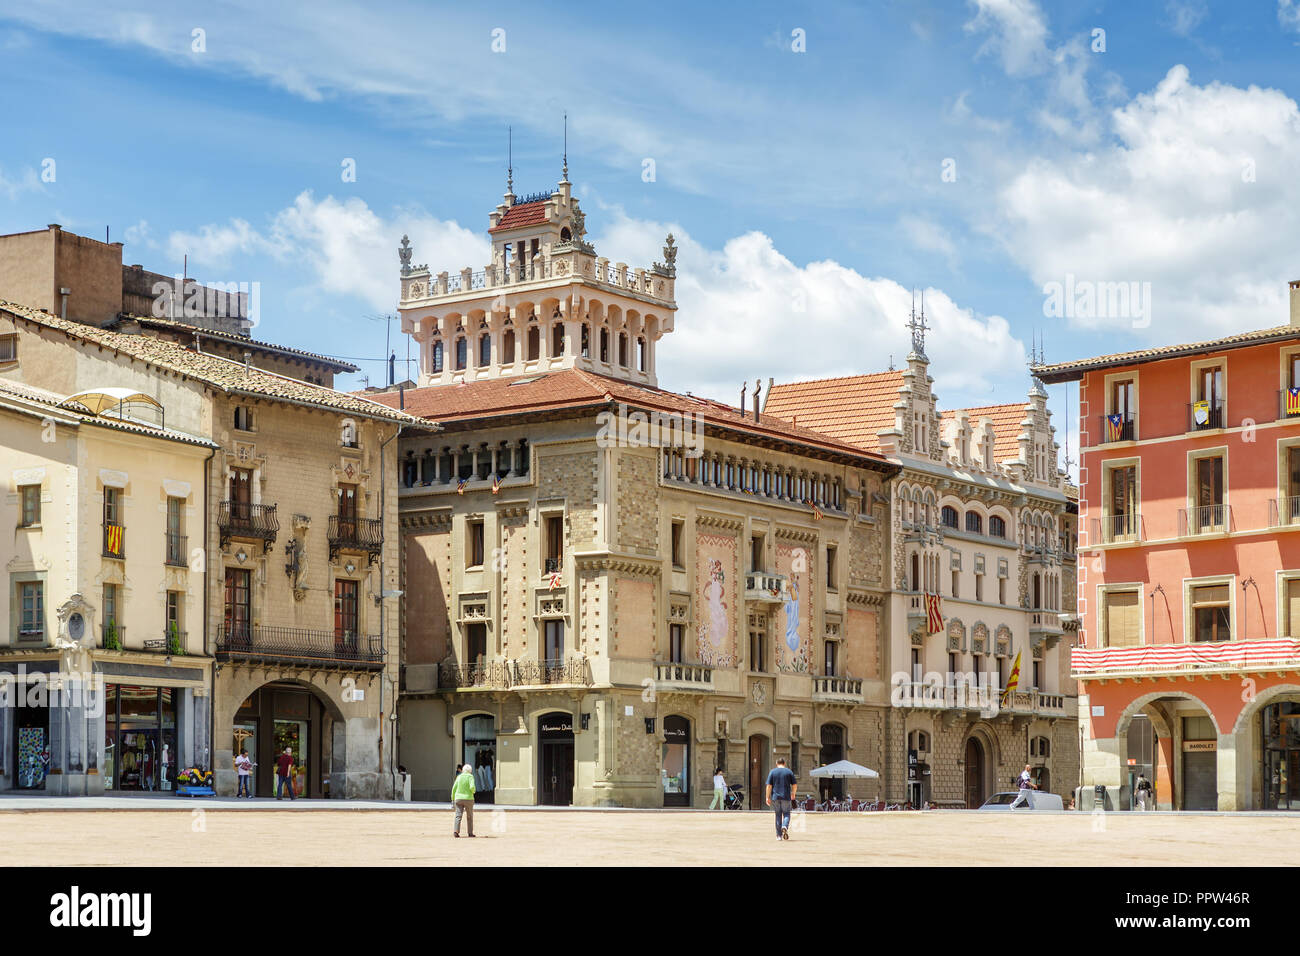 VIC, SPAIN - JUNE 19, 2014: Historic buildings in the Placa Major square. - Stock Image